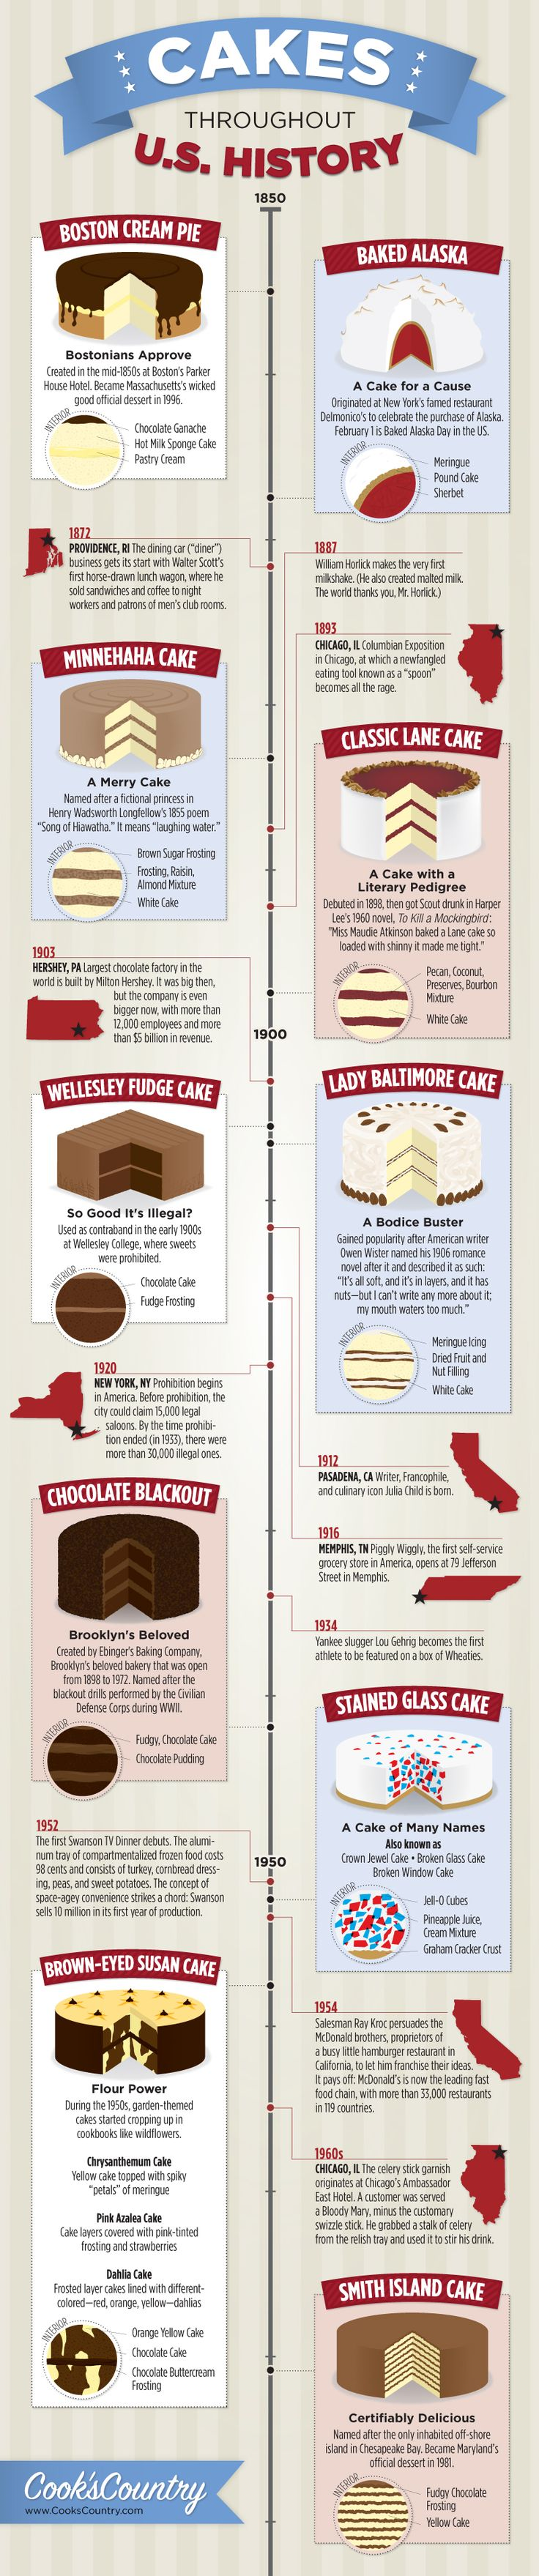 Infographic: Cakes throughout U.S. history.  Smith Island= AMAZING.